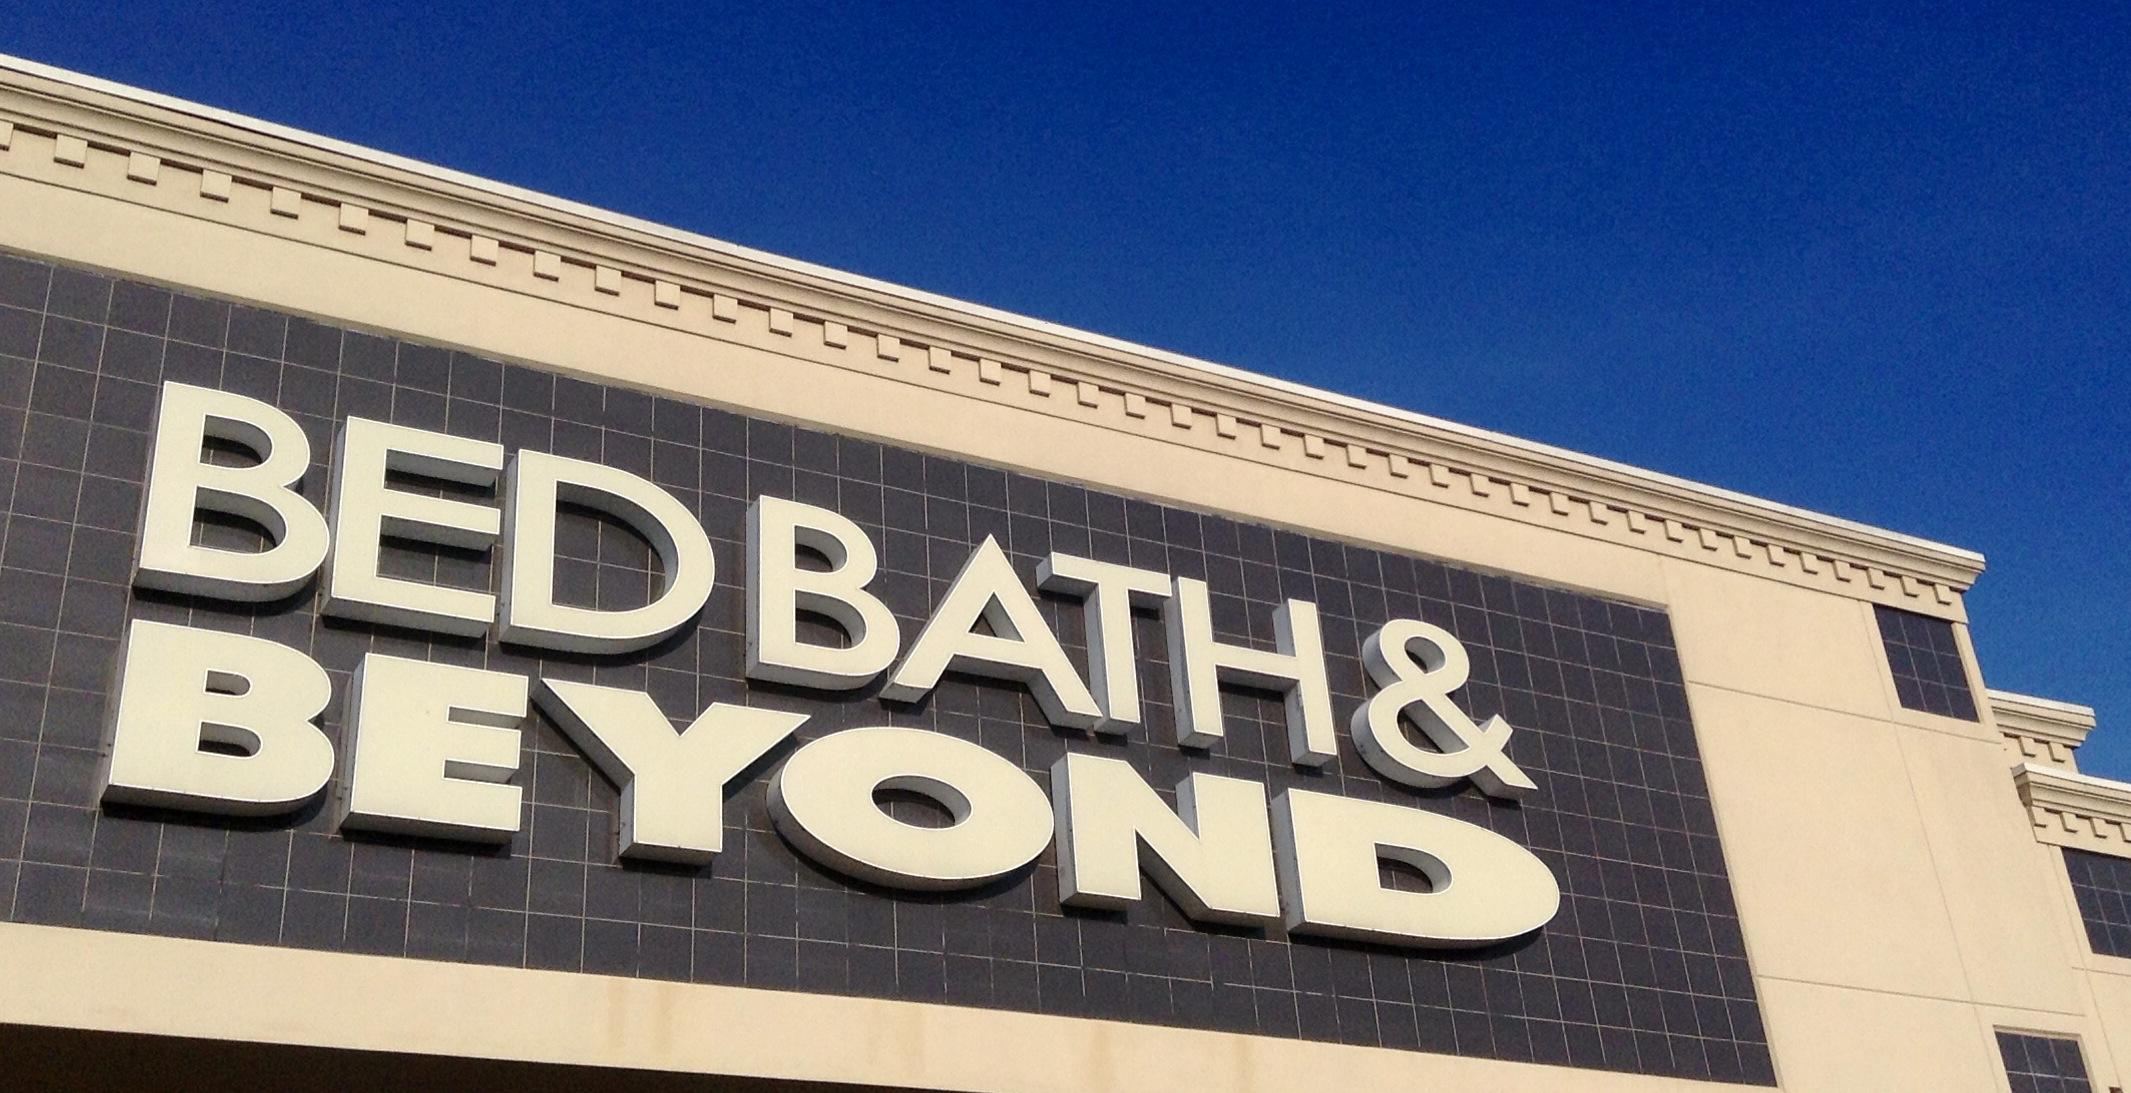 bed bath and beyond - photo #3